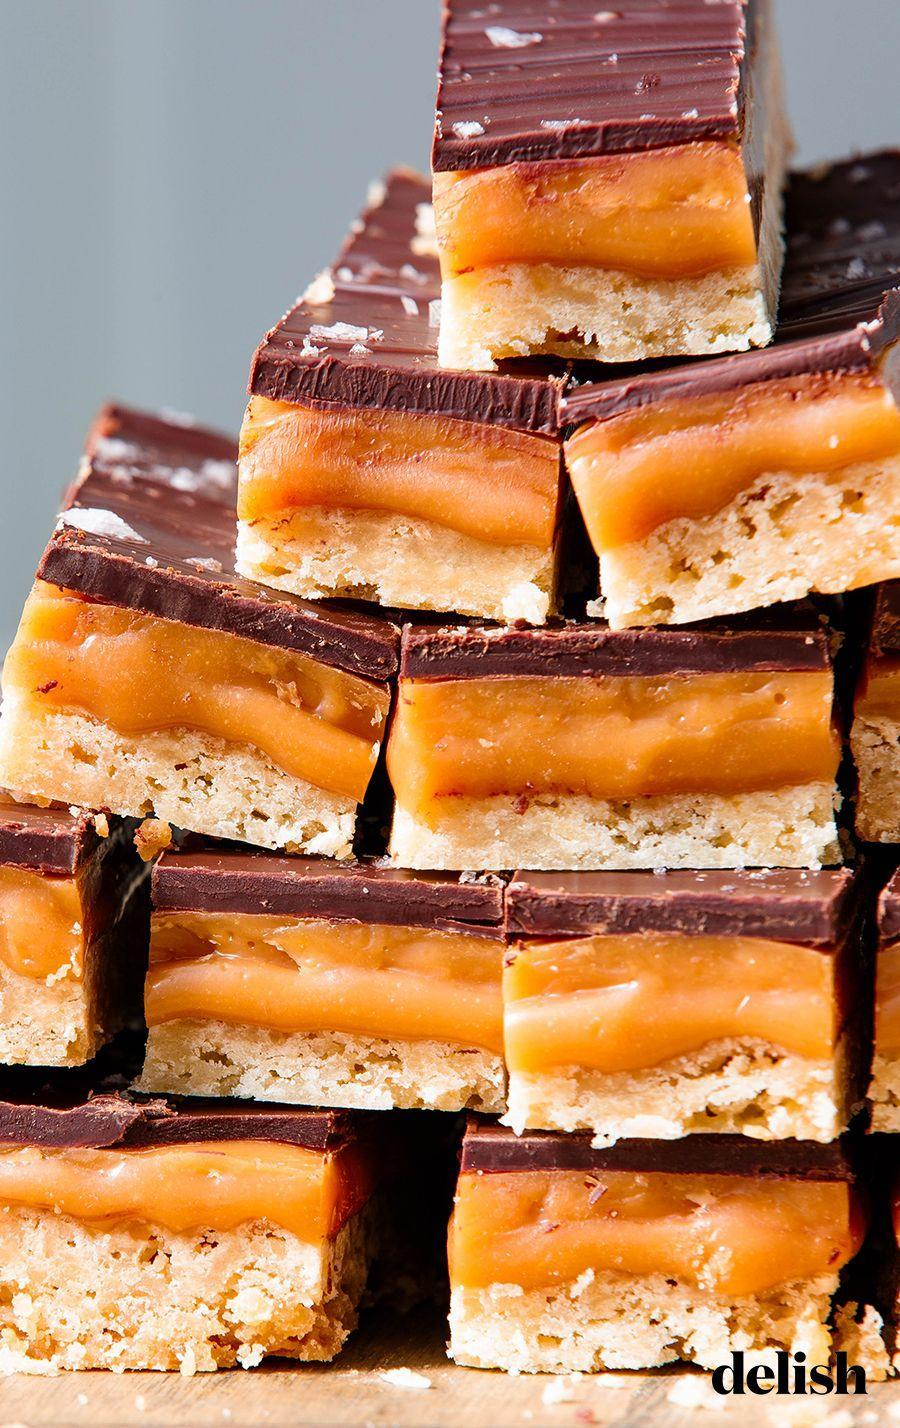 "<p>Treat your friends like a million bucks and gift them these sweet bars. </p><p>Get the recipe from <a href=""https://www.delish.com/cooking/a25781497/millionaire-shortbread-recipe/"" rel=""nofollow noopener"" target=""_blank"" data-ylk=""slk:Delish"" class=""link rapid-noclick-resp"">Delish</a>. </p>"